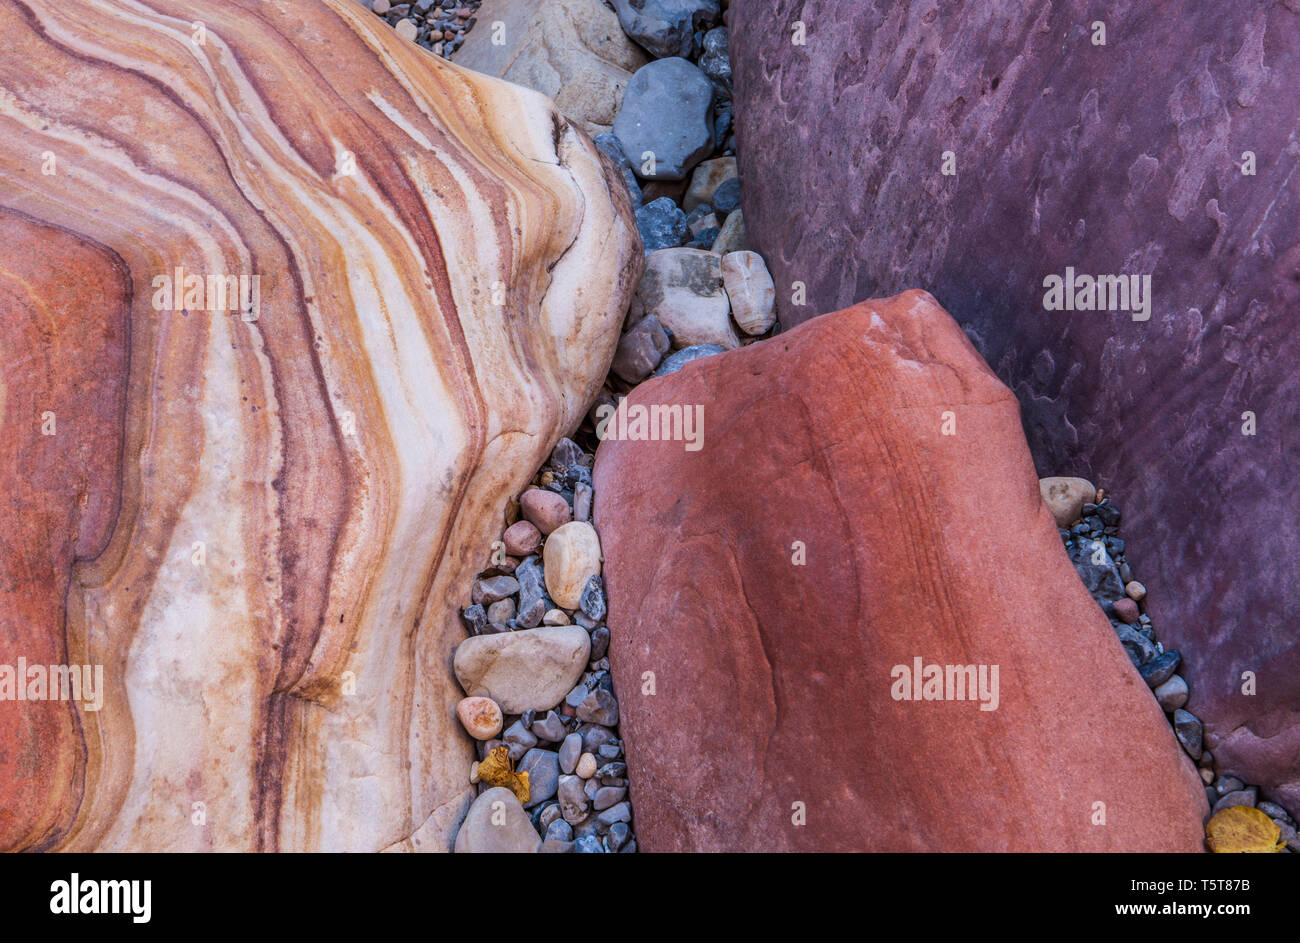 Colored stones in the bottom of a dry wash, Pine Canyon, Red Rock Canyons Conservation Area, Nevada, USA - Stock Image